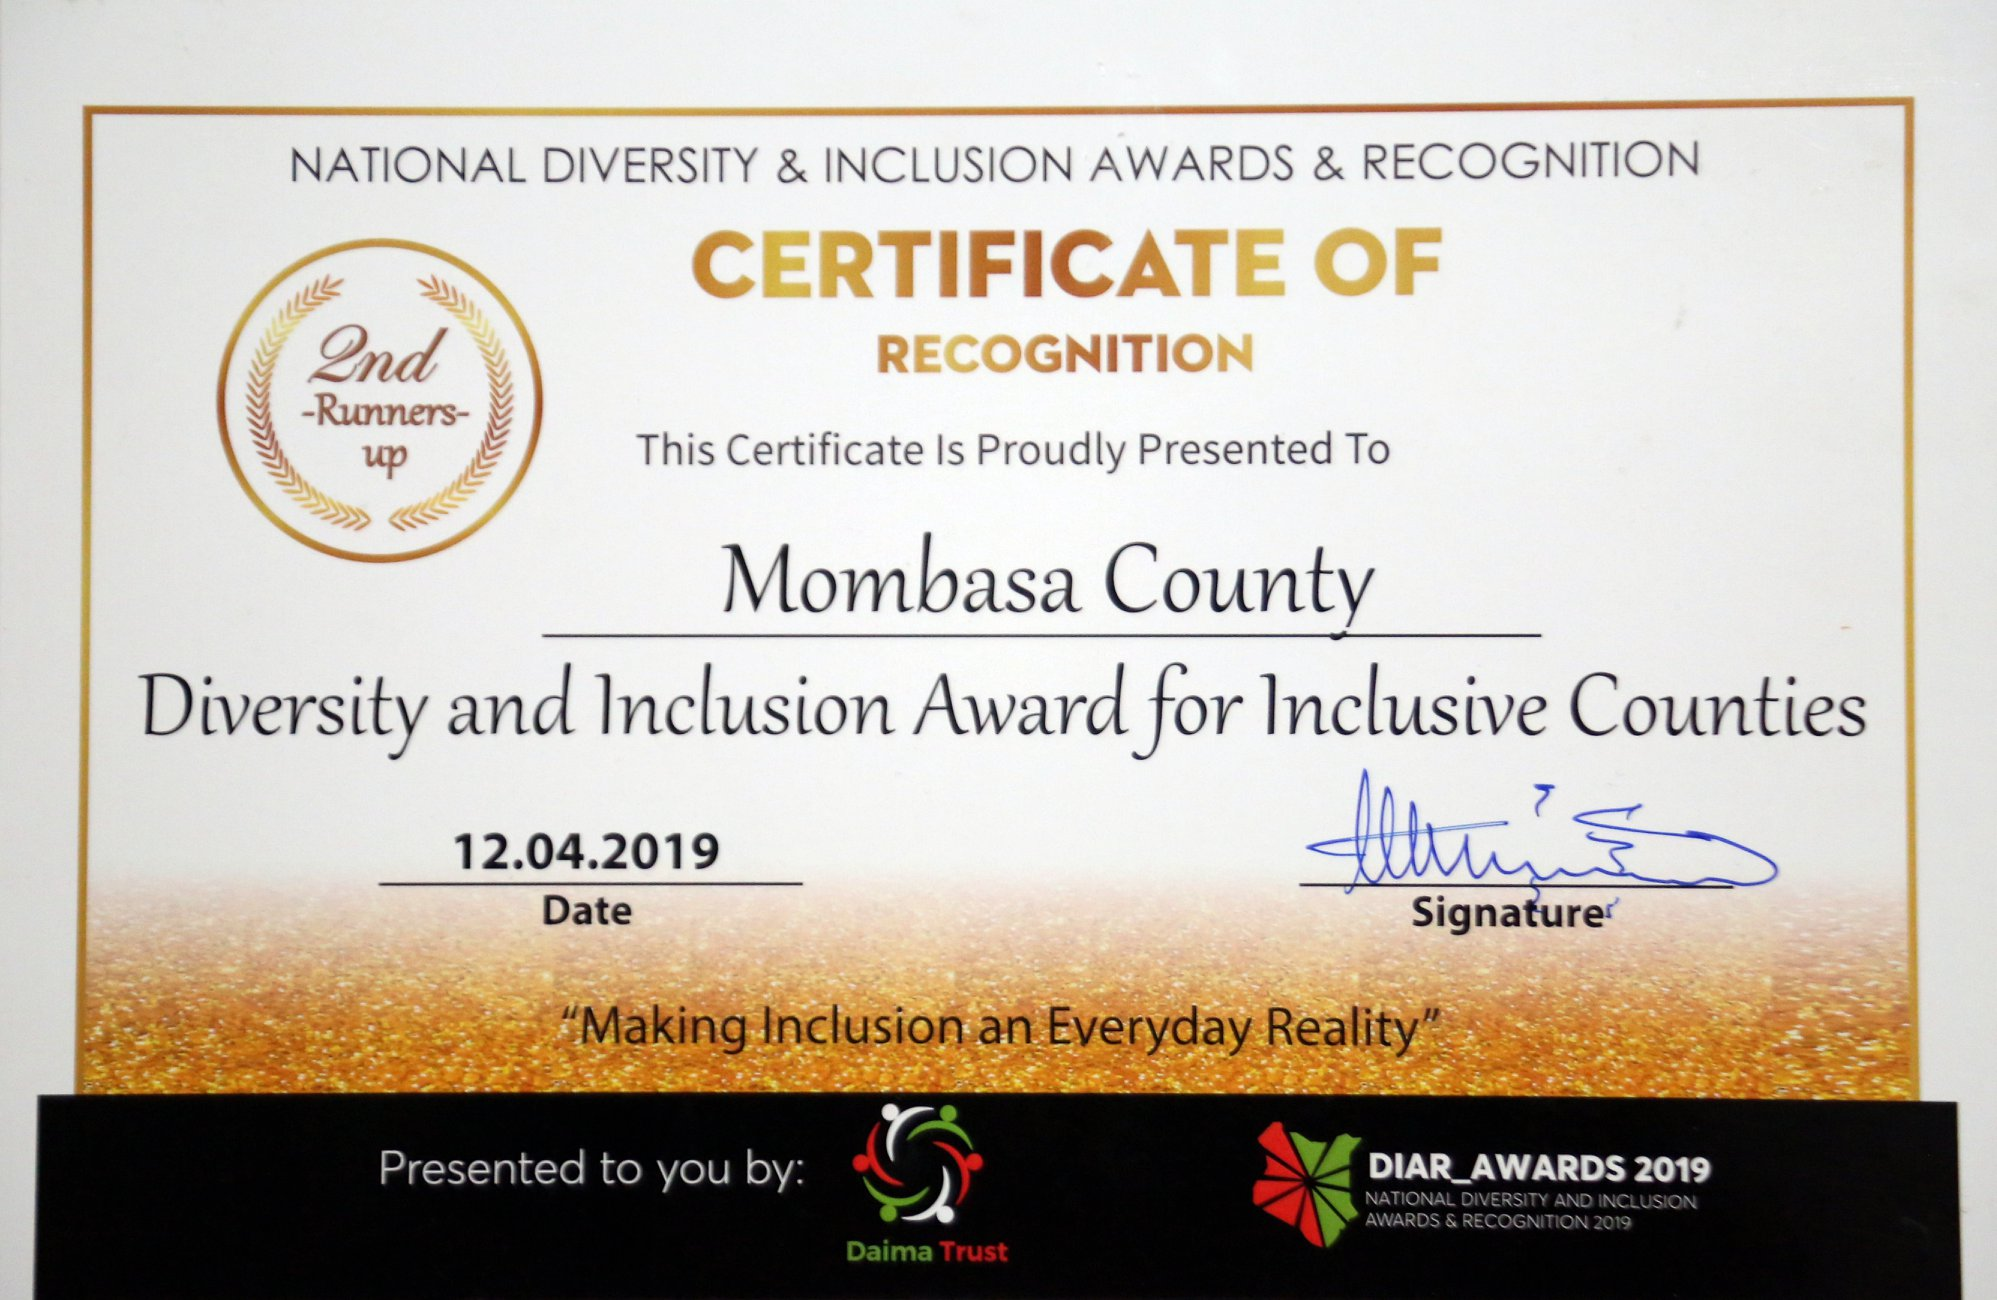 Mombasa County was last evening ranked 2nd Runners-up at the Diversity and Inclusion Awards Ceremony.